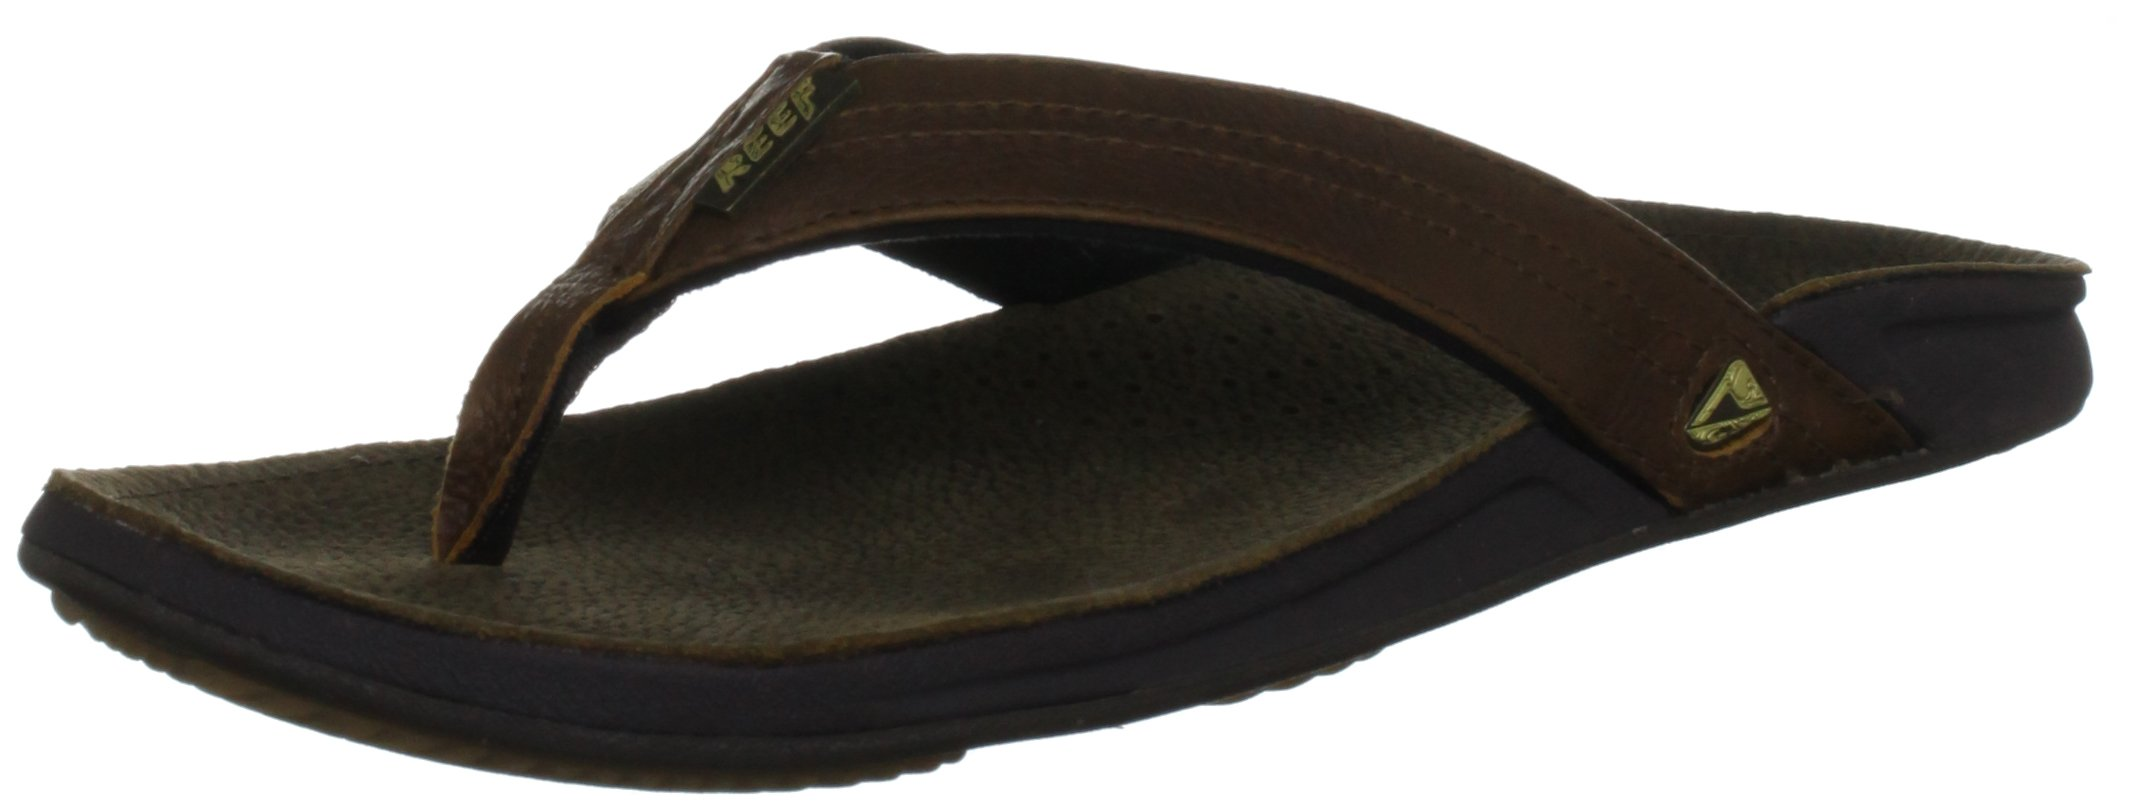 Reef Men's J-Bay Sandal,Camel,11 M US